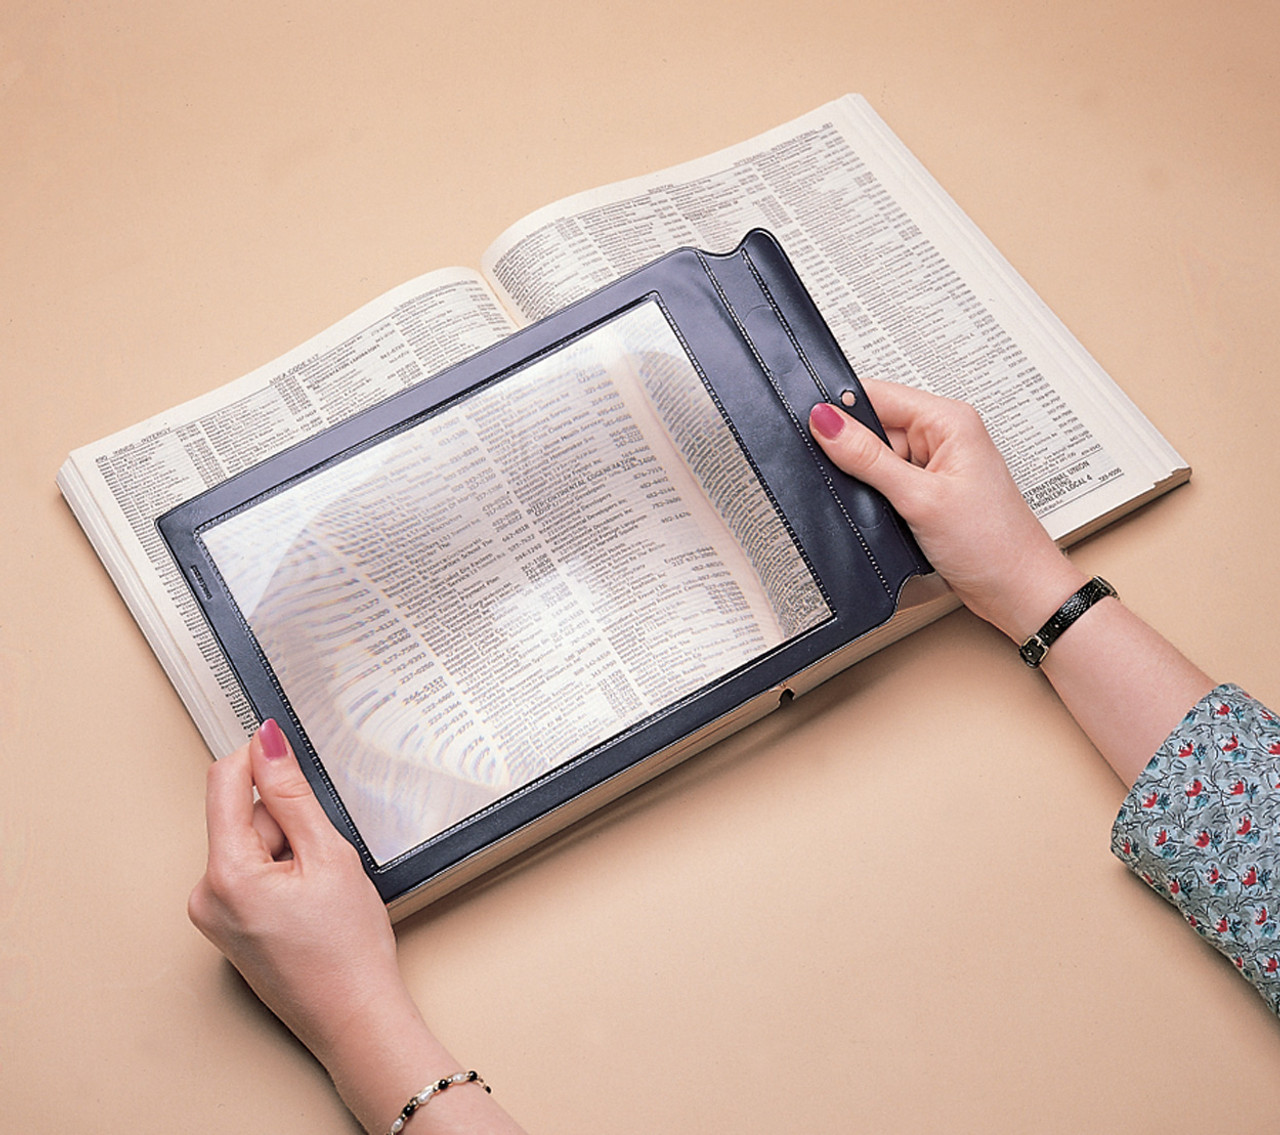 """2X Framed Full Page Magnifier (6"""" x 8.5"""")"""